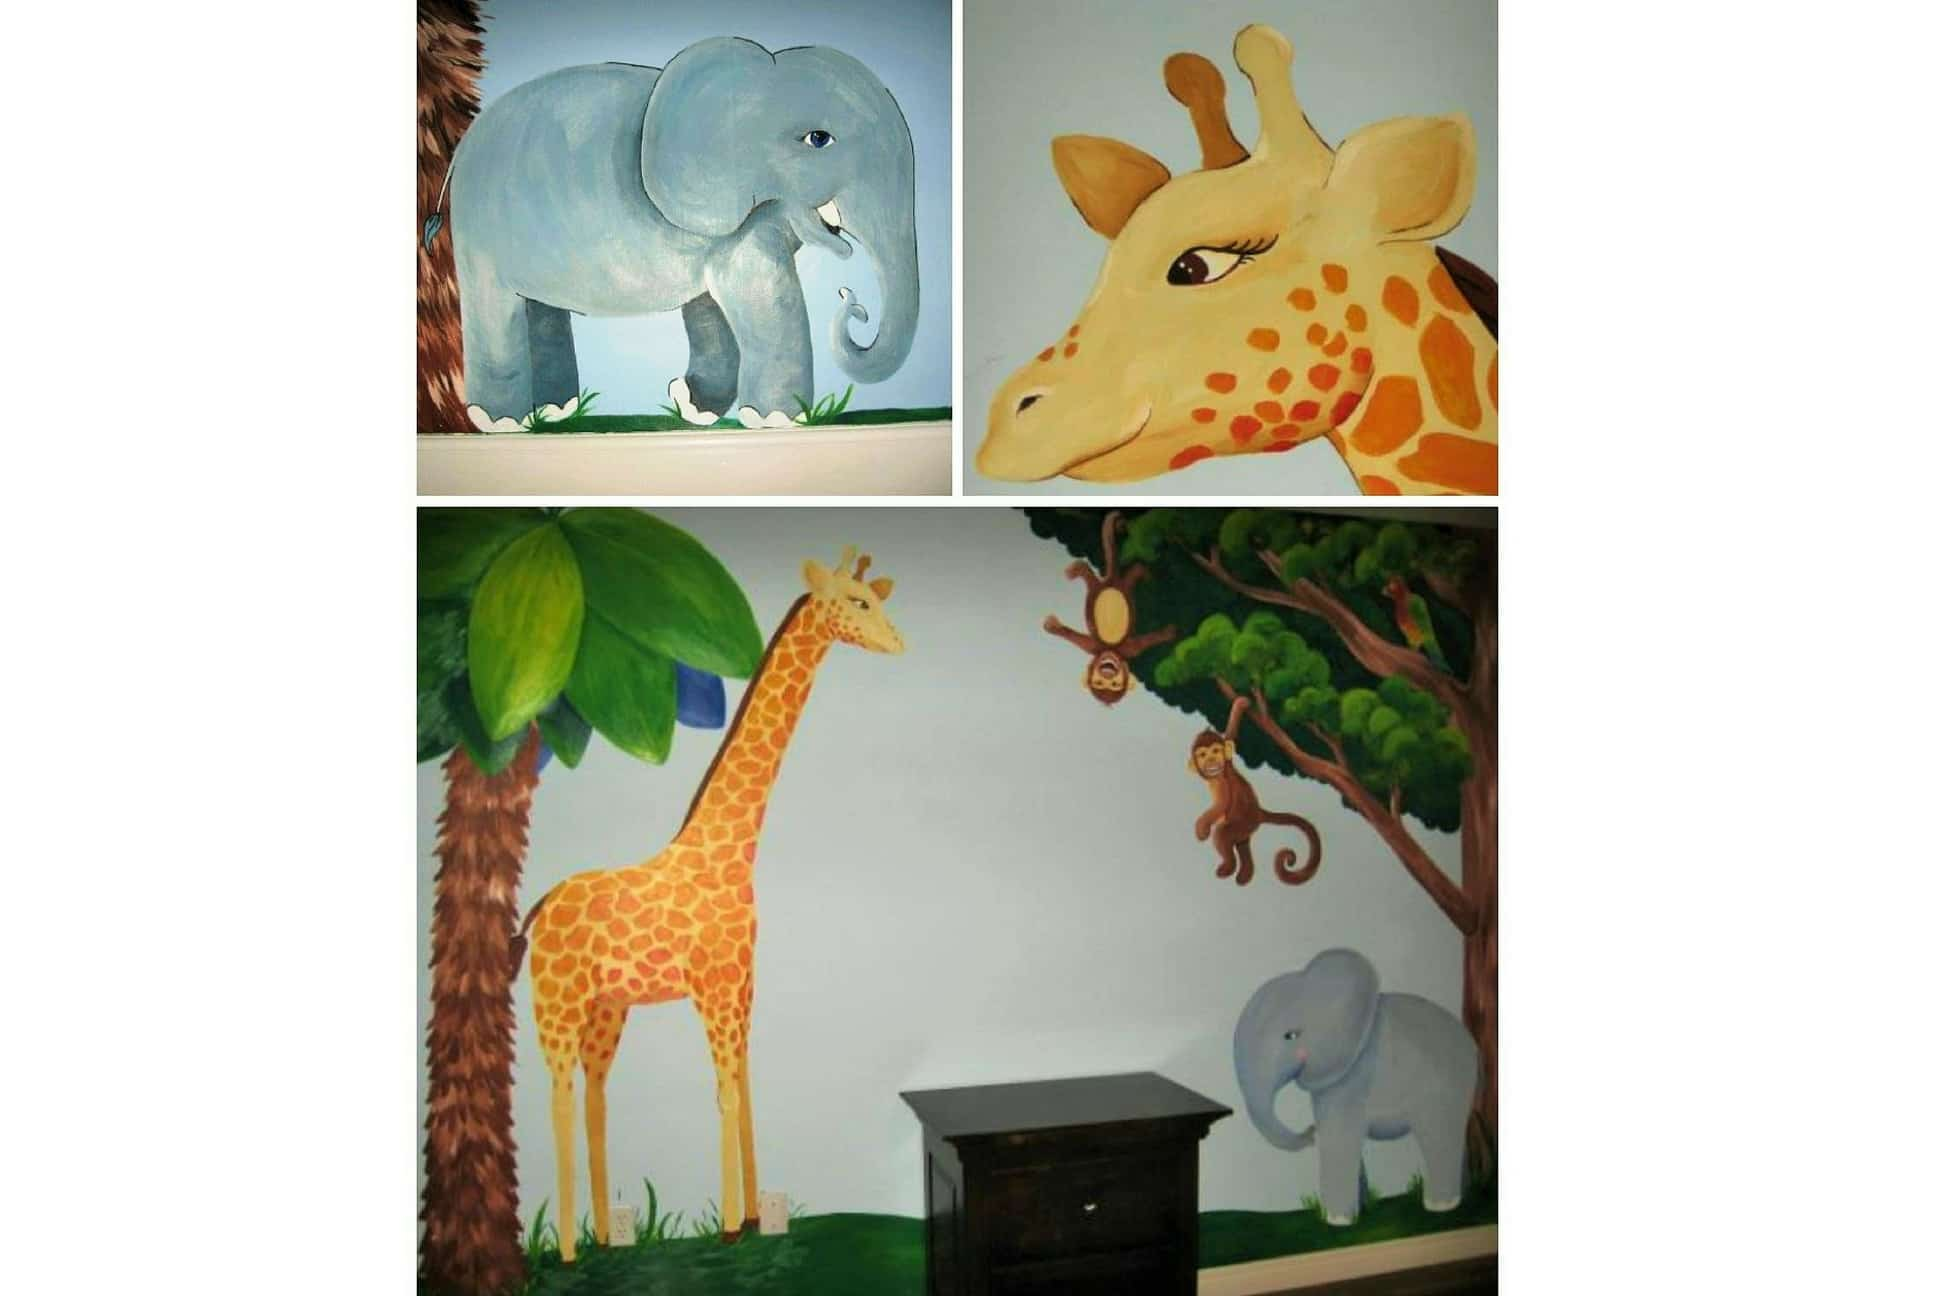 A kids wall mural featuring an elephant, giraffe and monkeys swinging from a tree